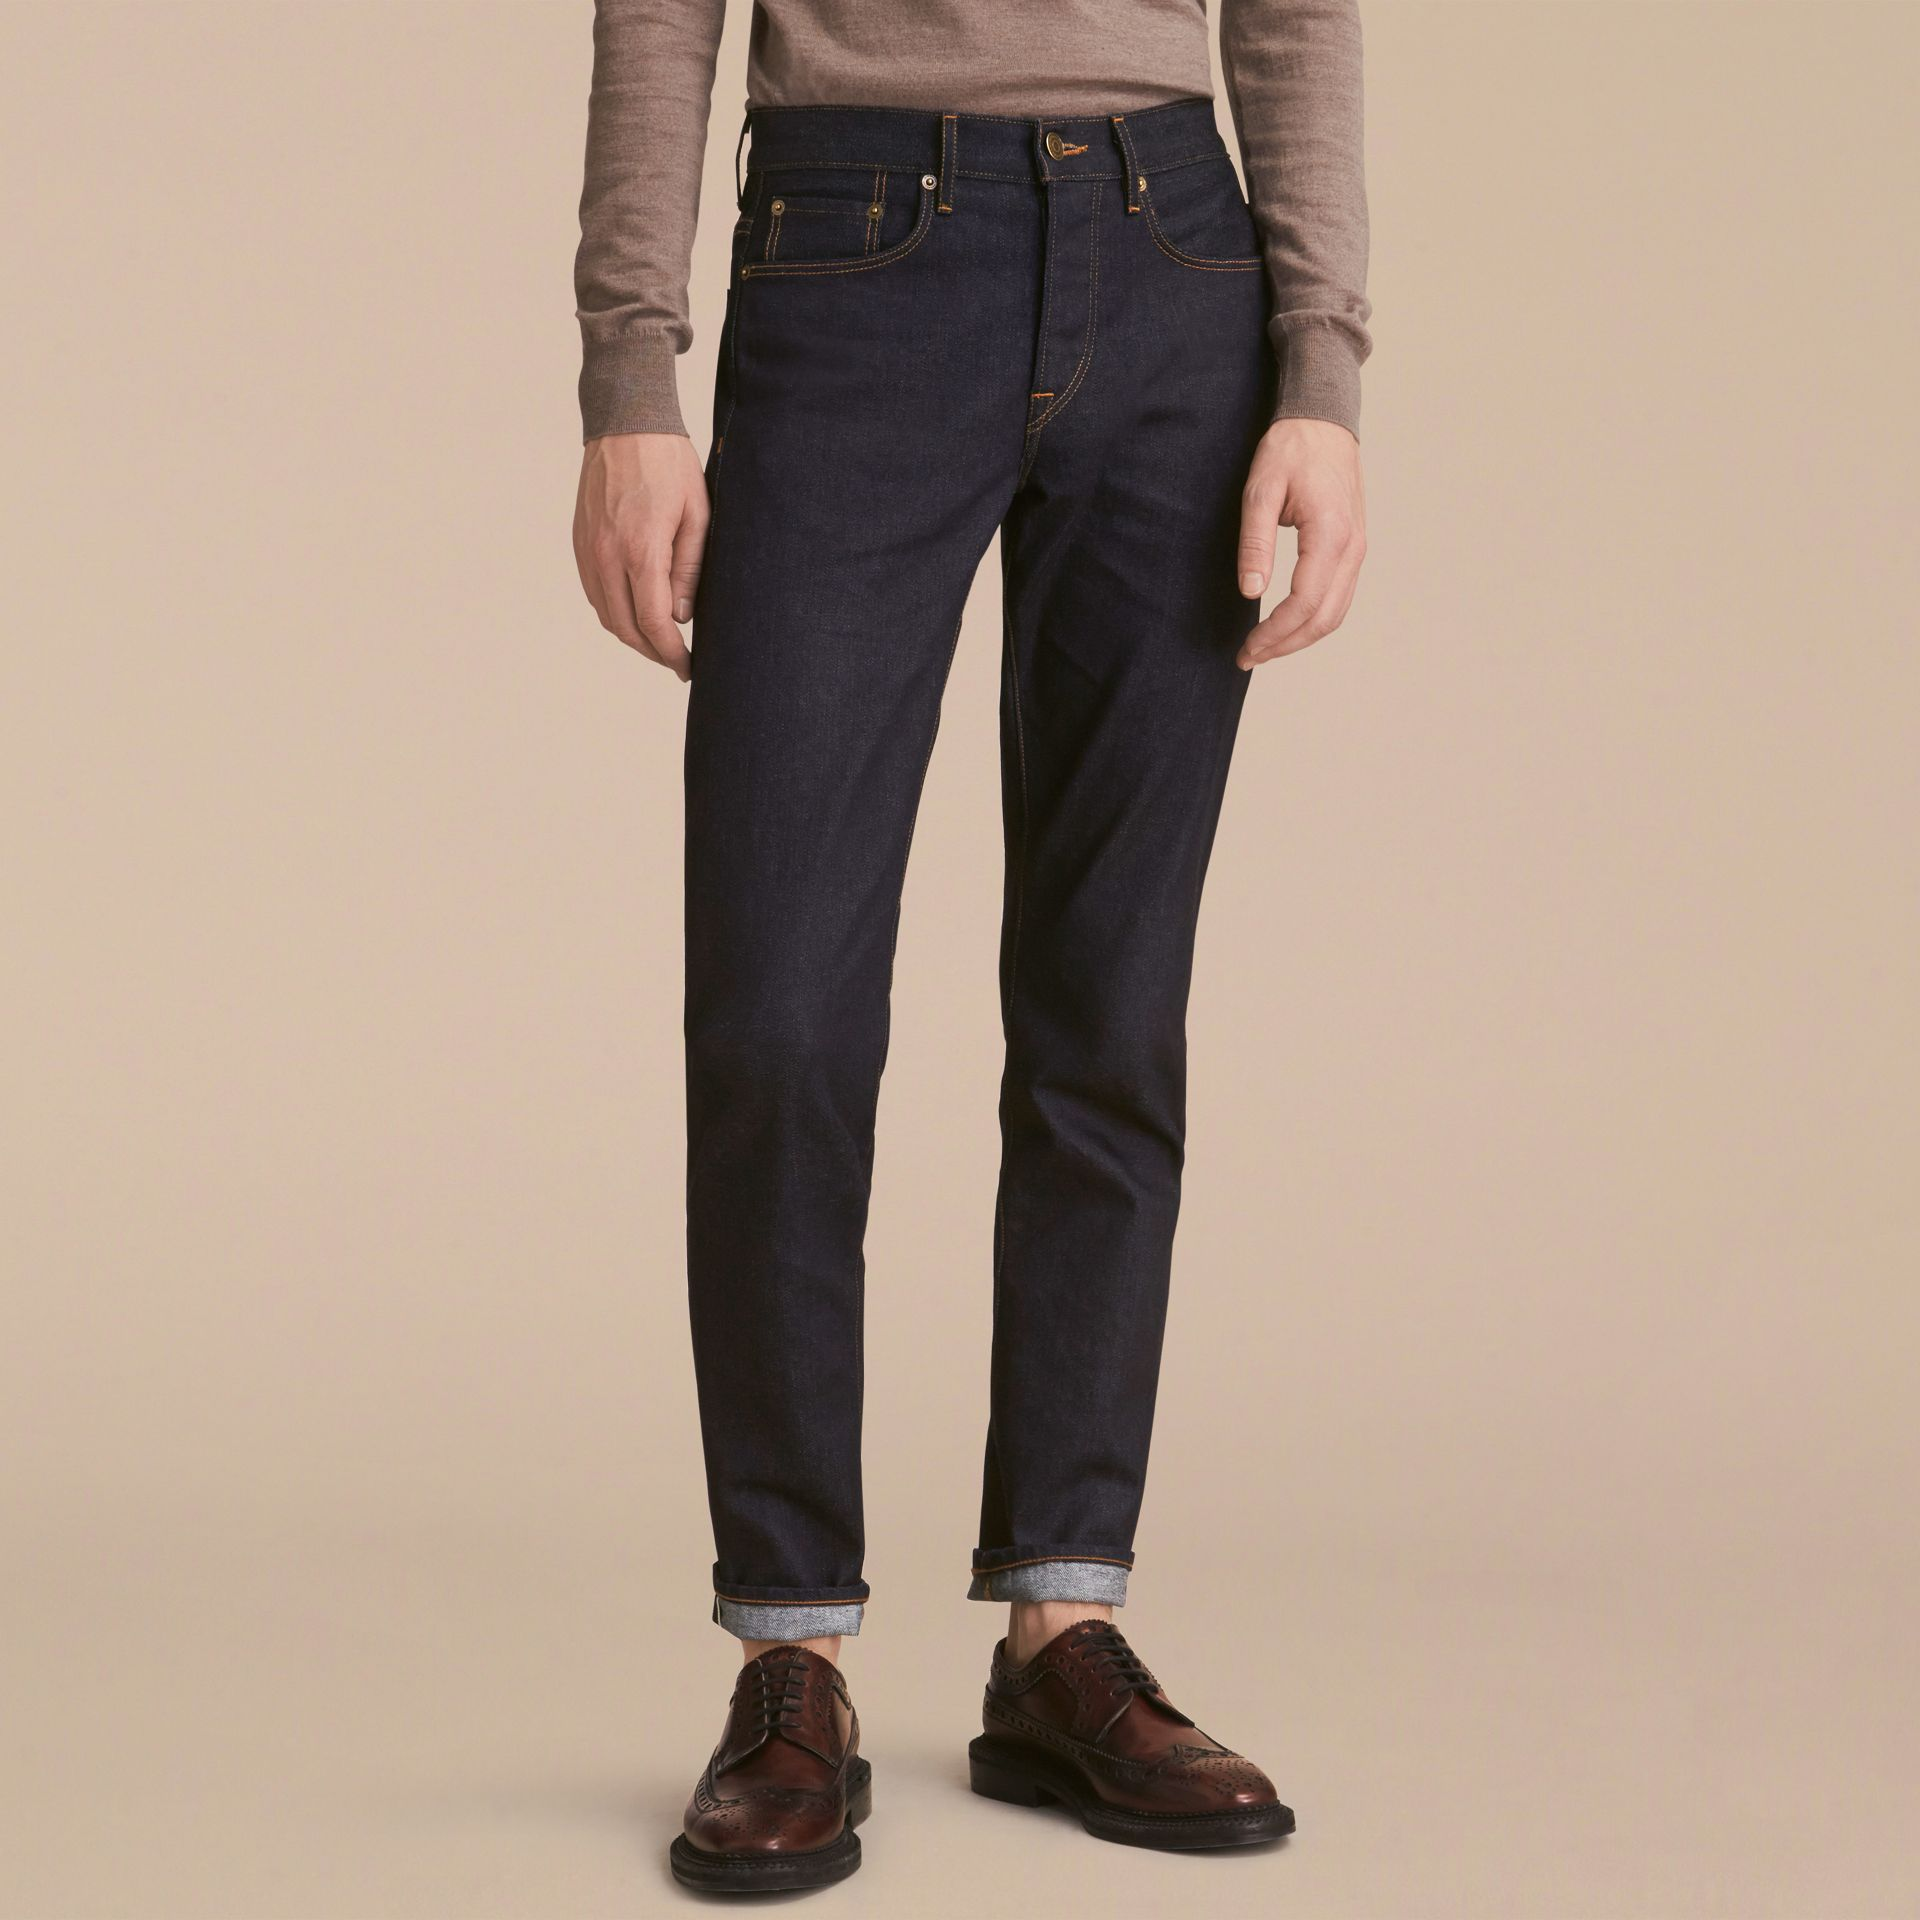 Relaxed Fit Comfort Stretch Indigo Japanese Denim Jeans in Dark - Men | Burberry - gallery image 7